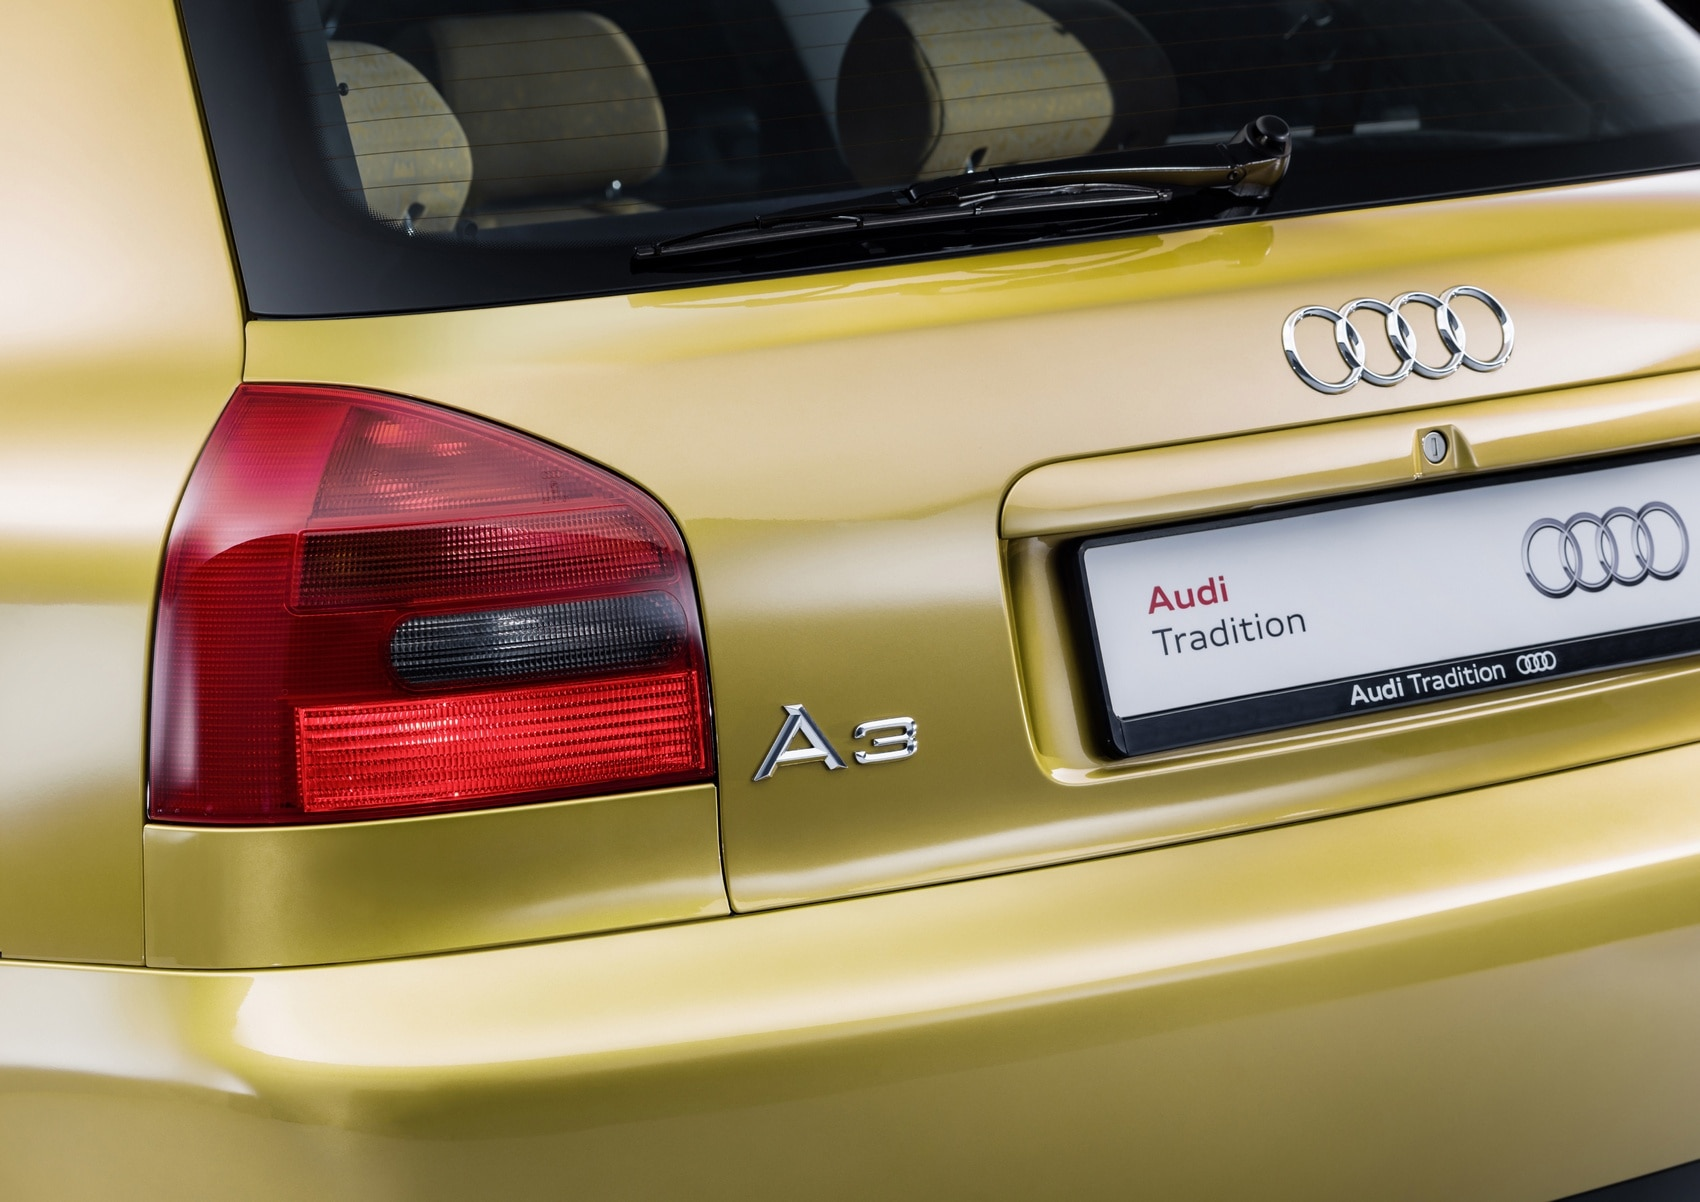 Audi A3, Generation 1, Year of manufacture 1996